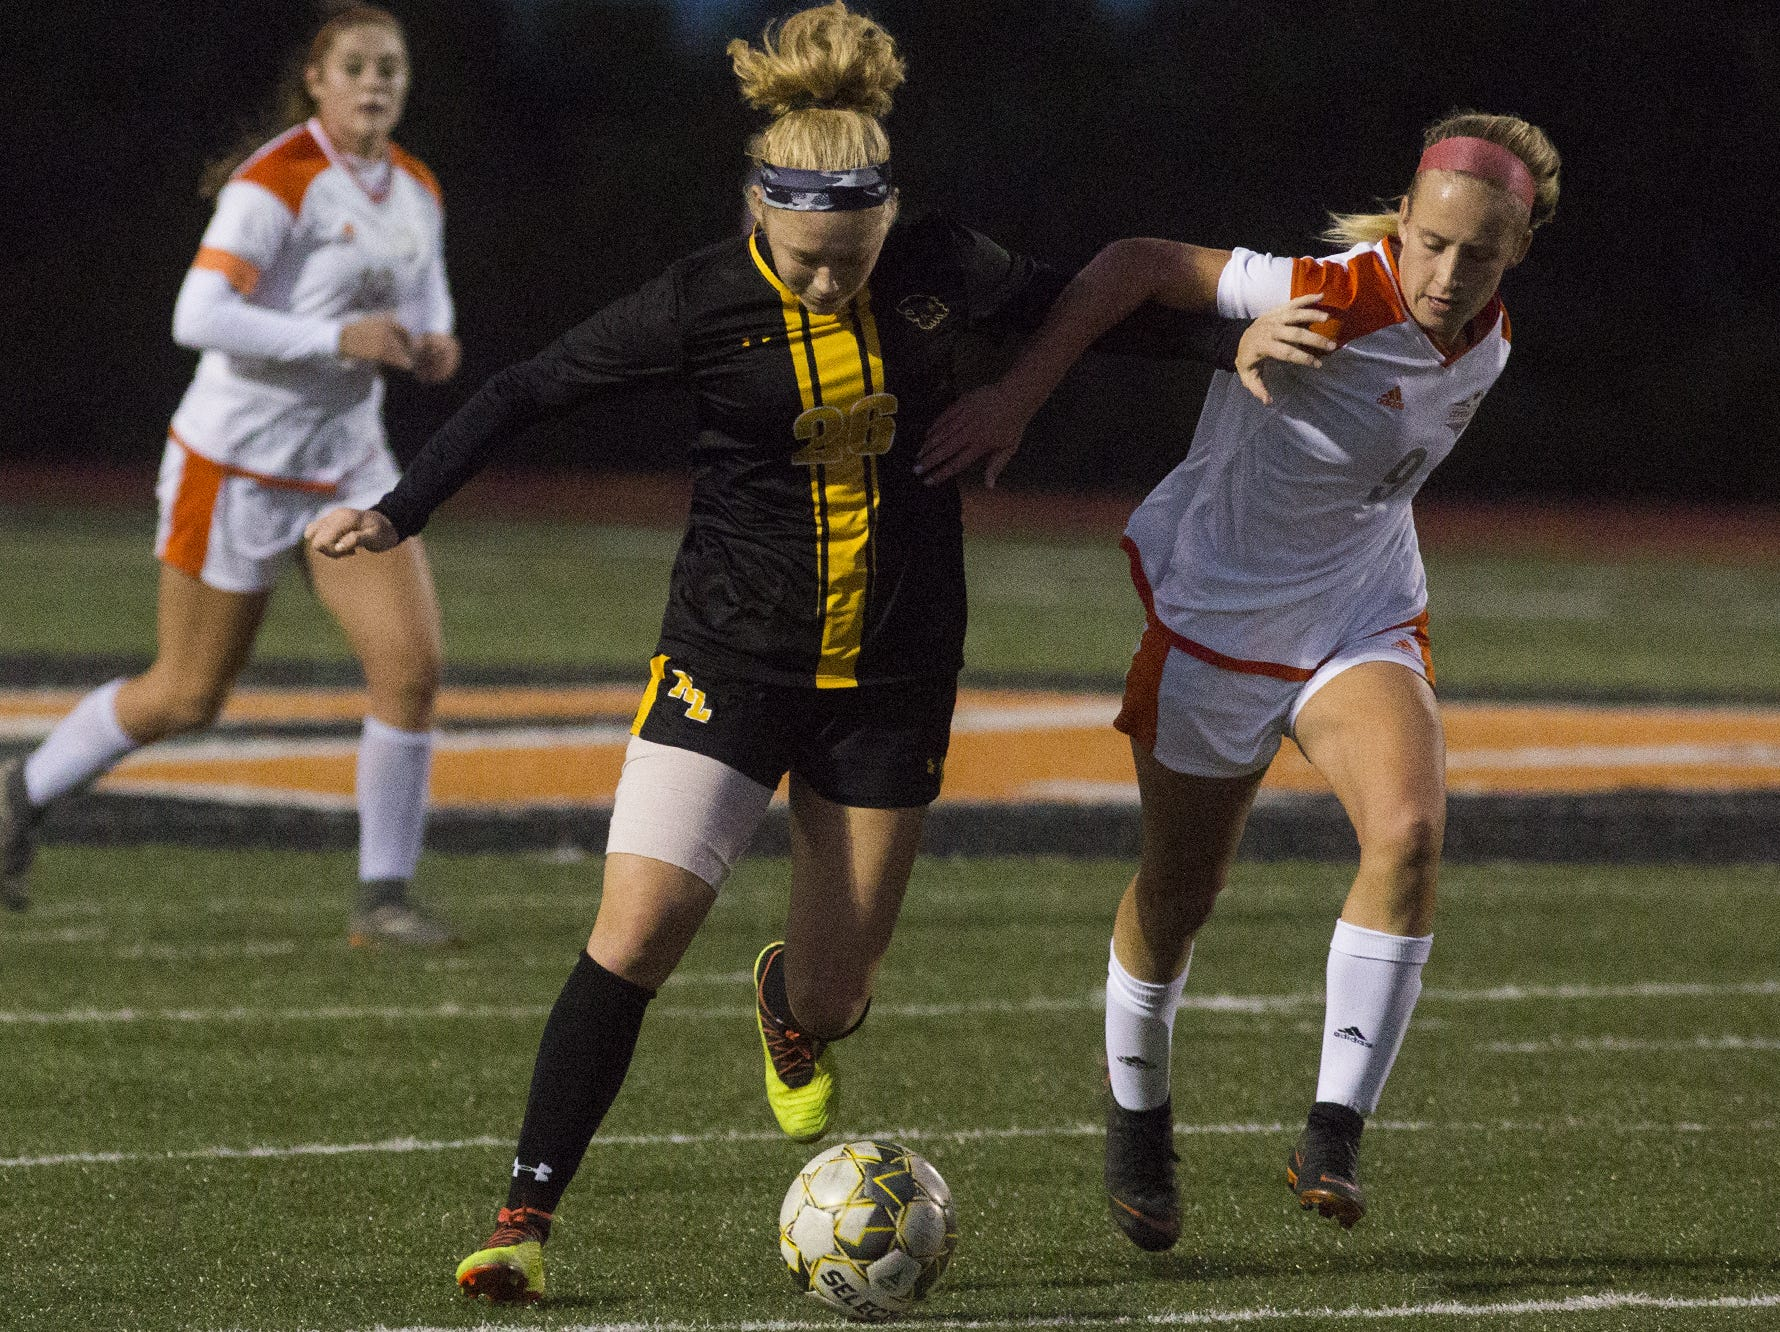 Red Lion's Paige Frey, left, and Central York's Sydney Koncsol compete for the ball. Central York defeats Red Lion 1-0 in the YAIAA girls' soccer championship game at Northeastern High School in Manchester, Saturday, October 20, 2018.